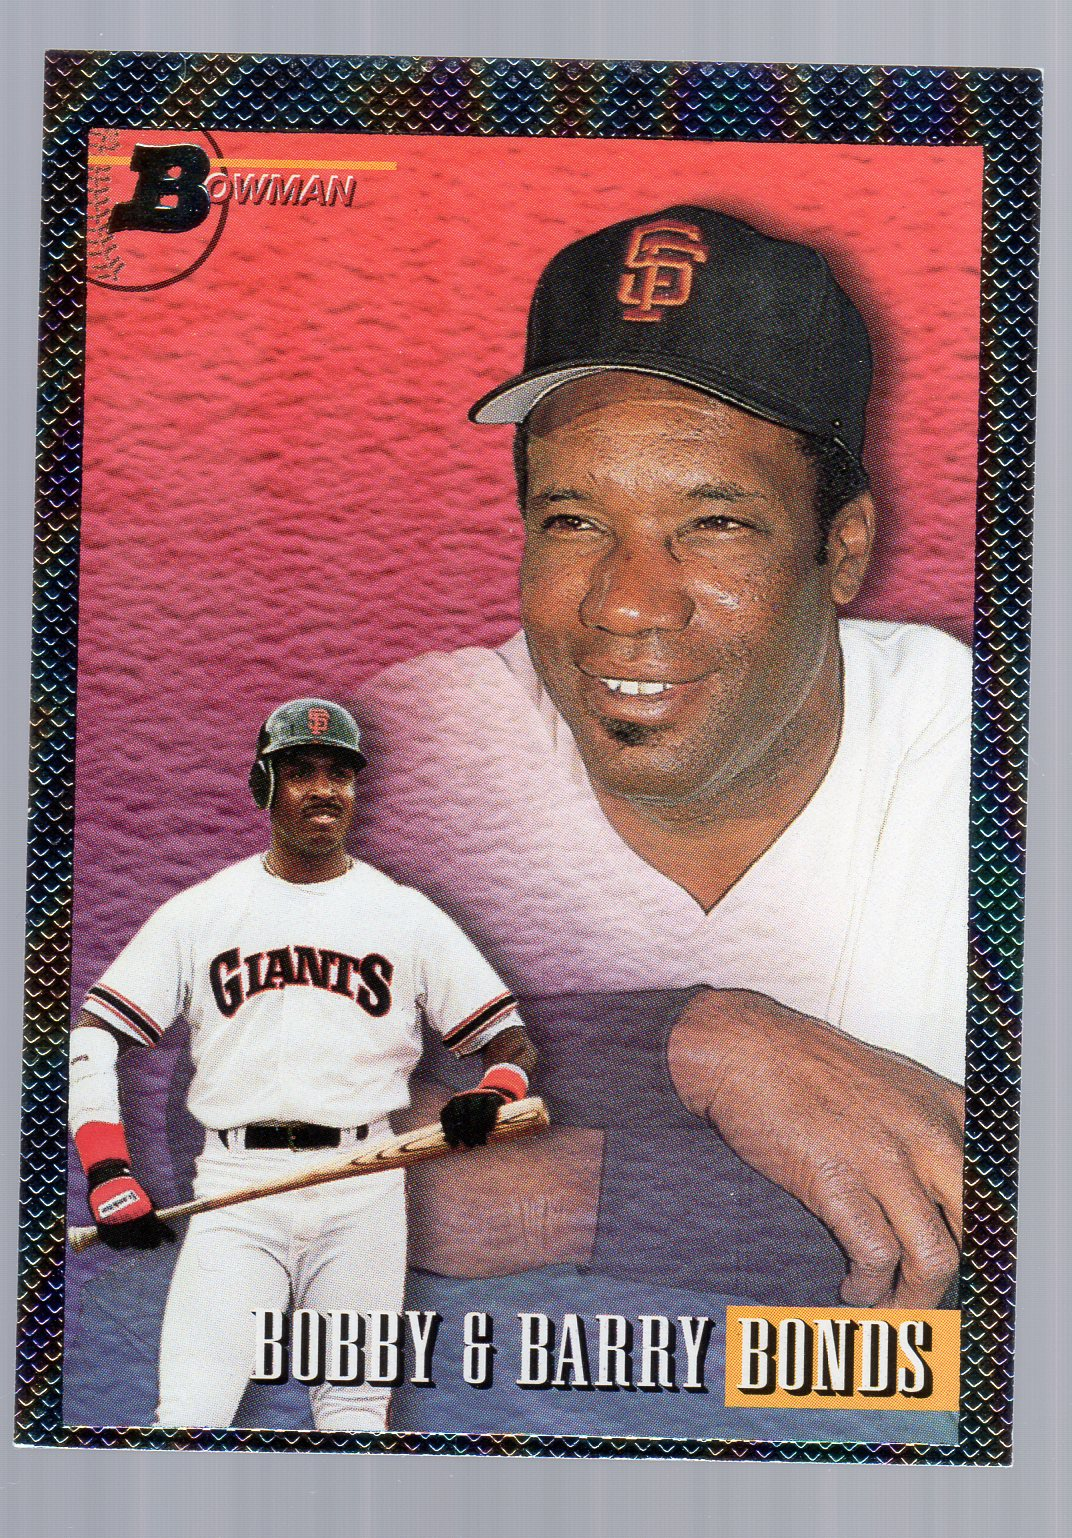 1993 Bowman #702 Barry/Bobby Bonds FOIL